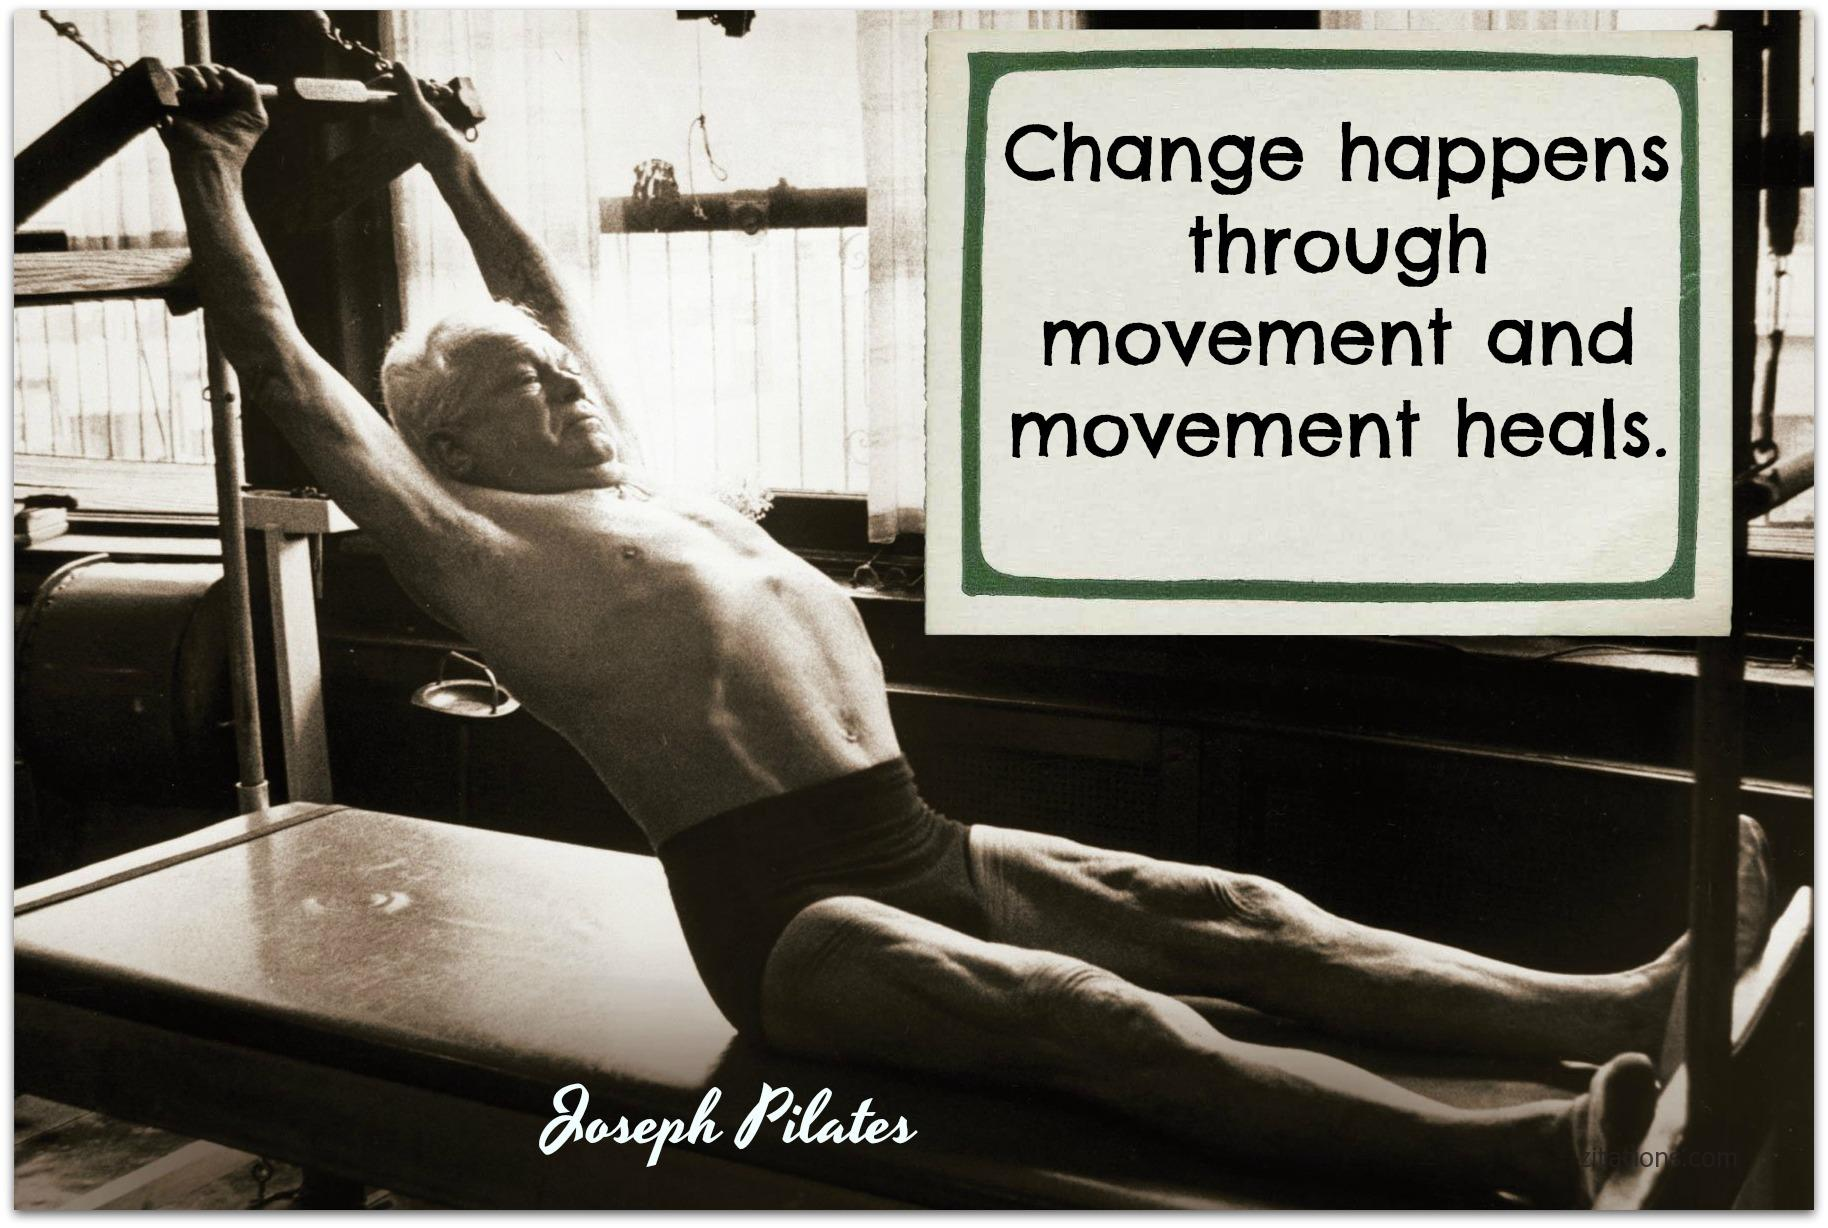 Joseph Pilates on exercises